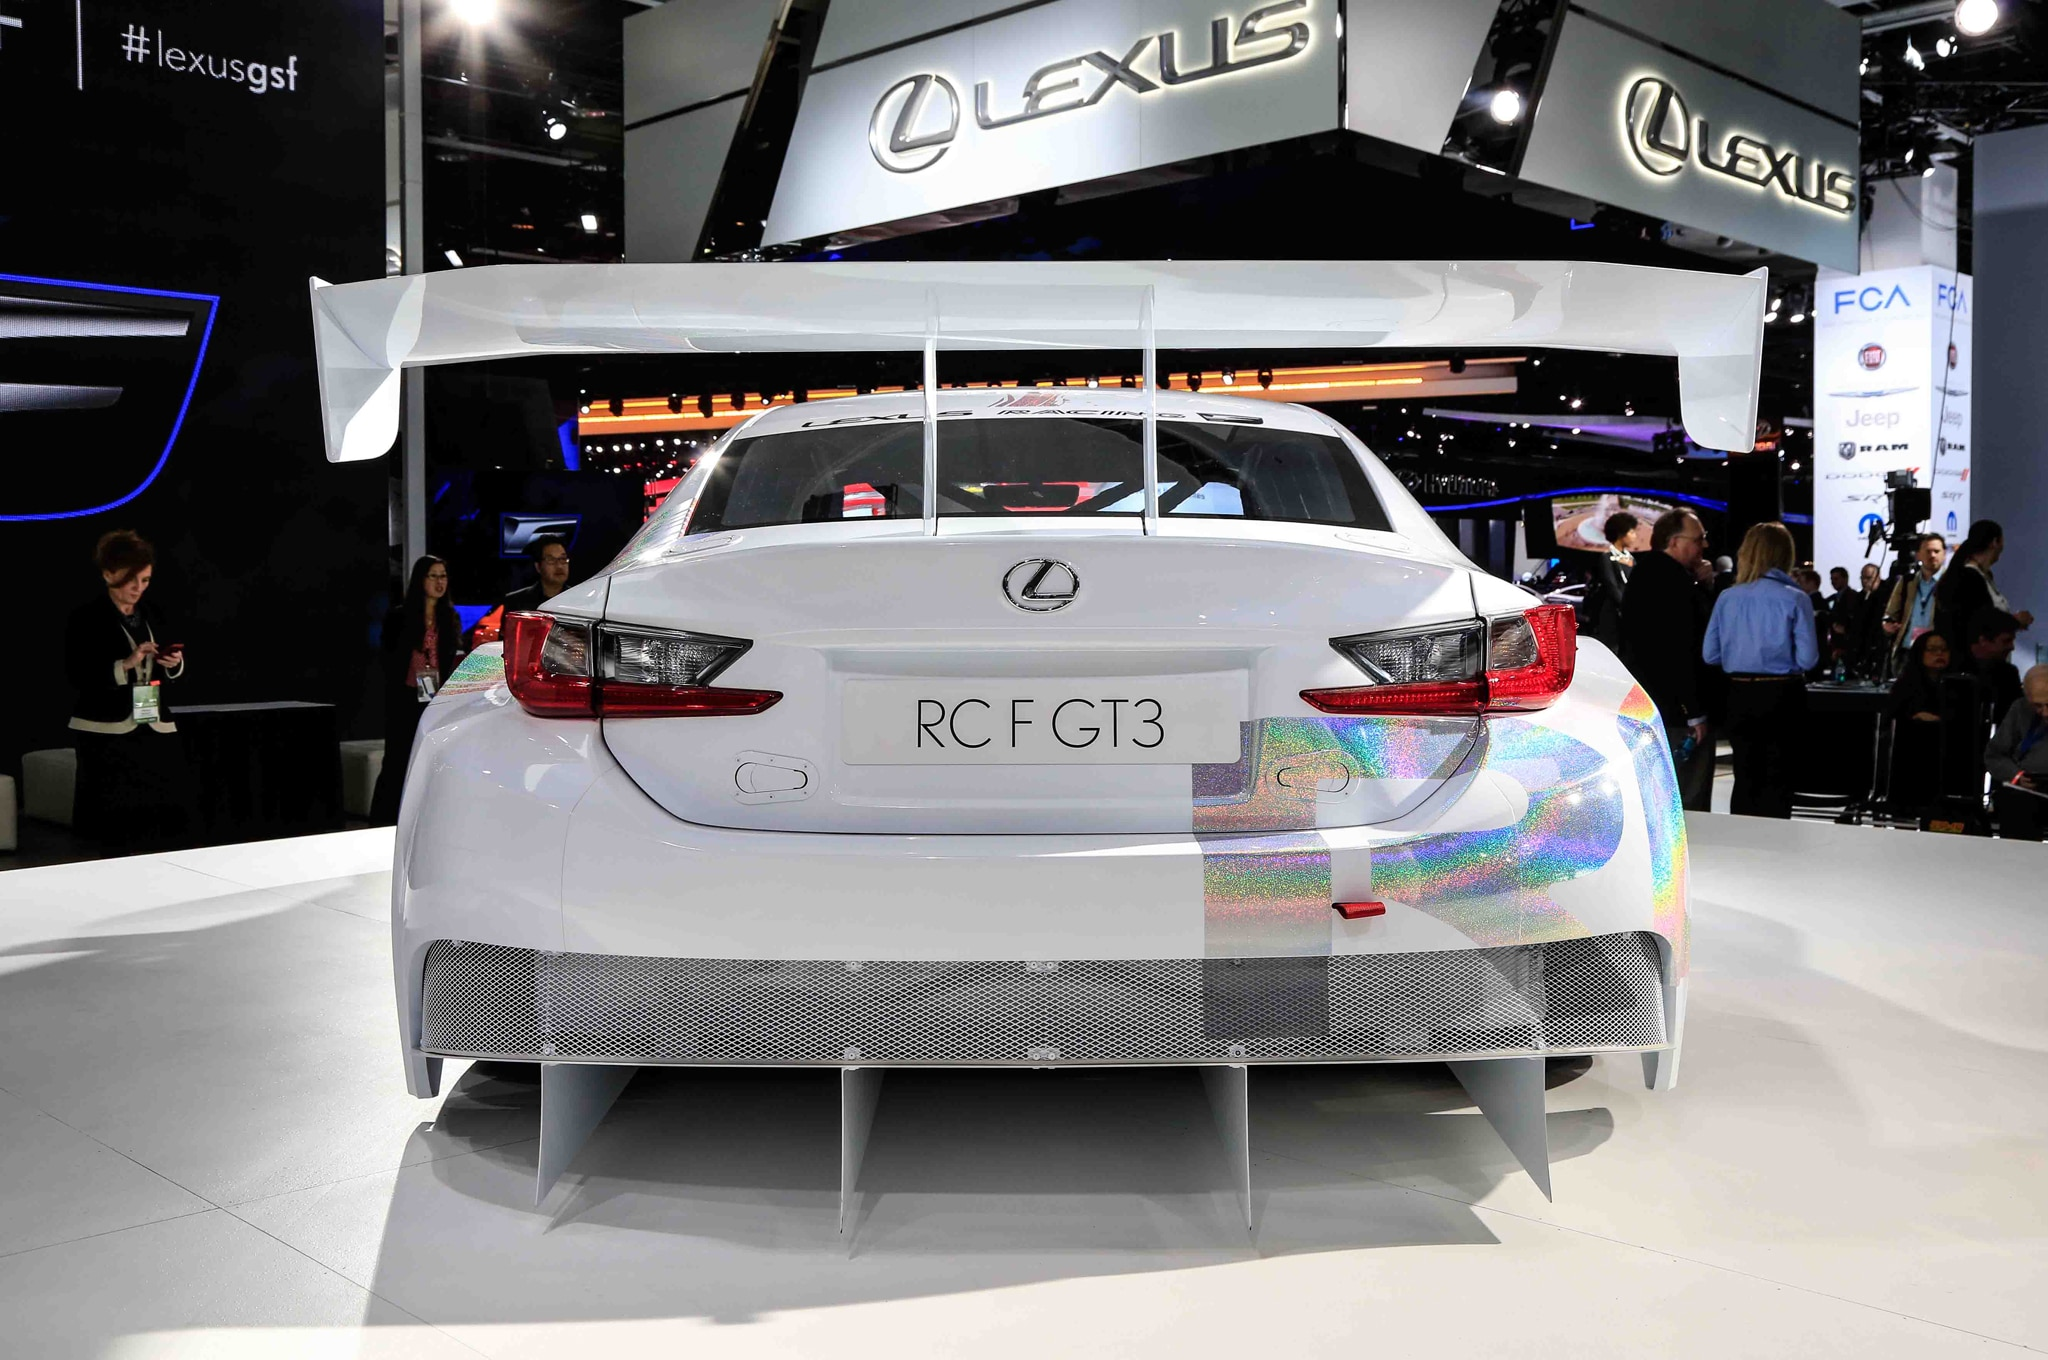 Lexus Set to Go Racing in 2016 with the RC F GT3